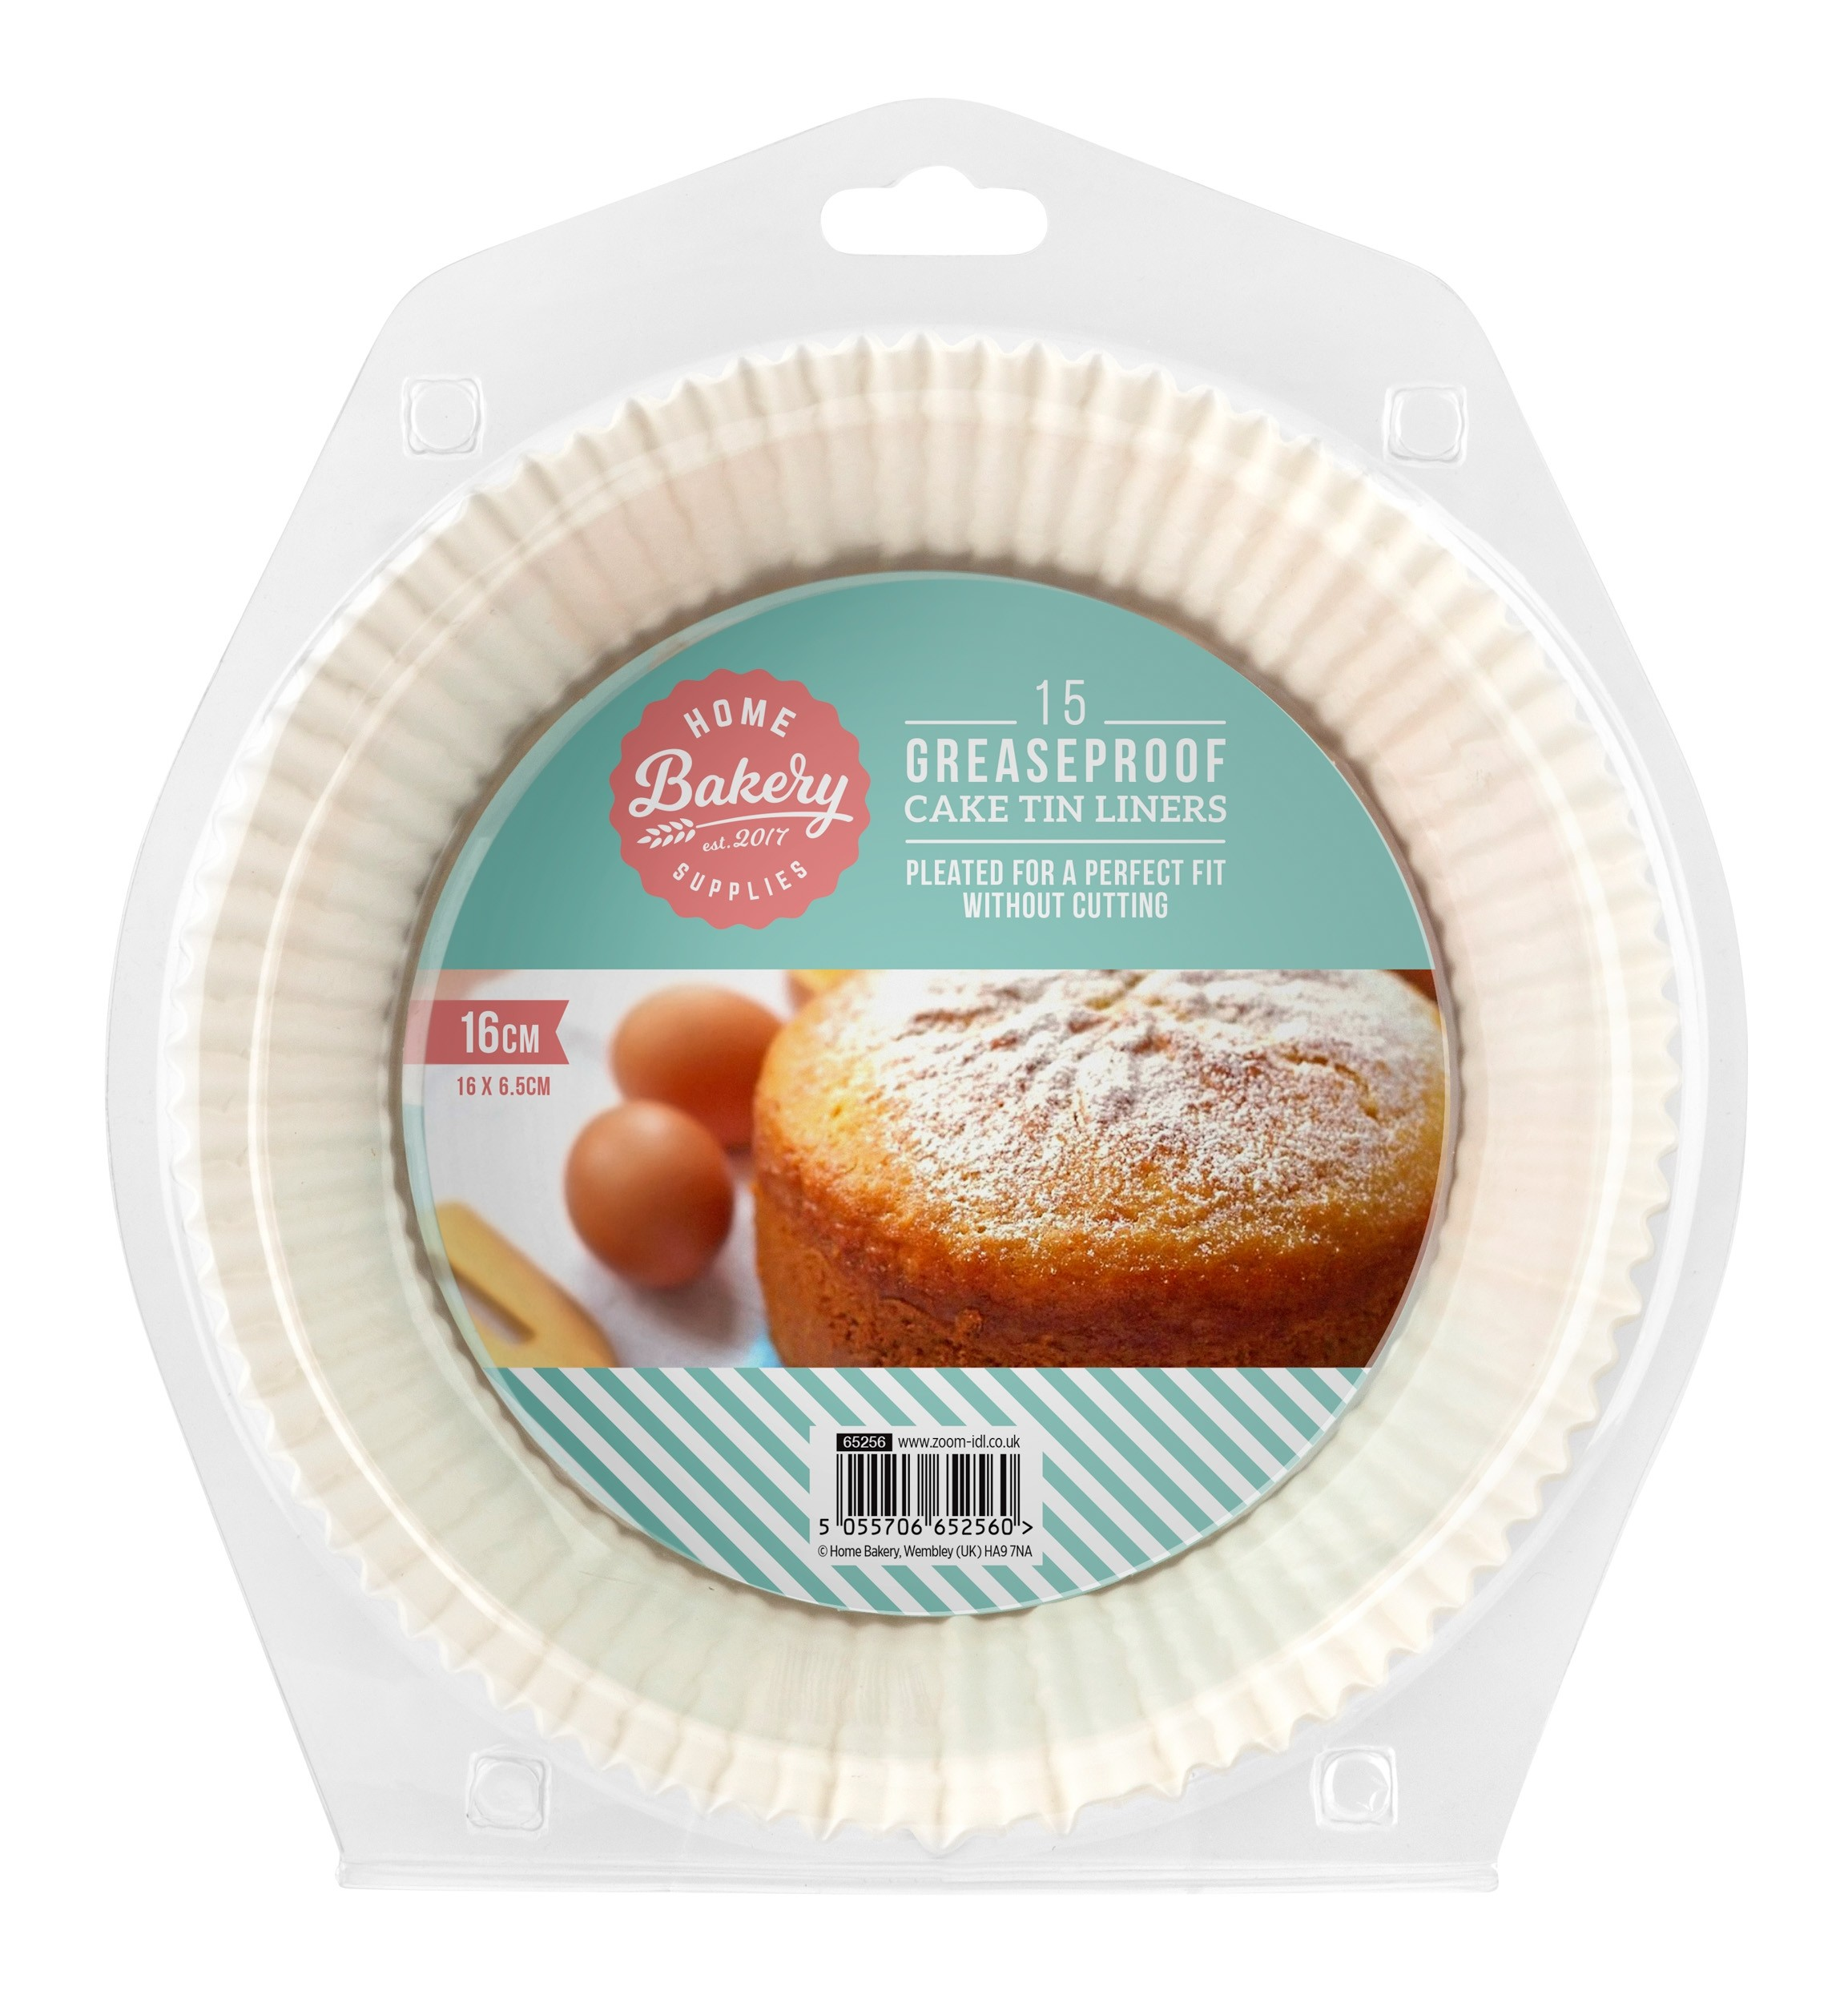 15 GREASEPROOF CAKE TIN LINERS